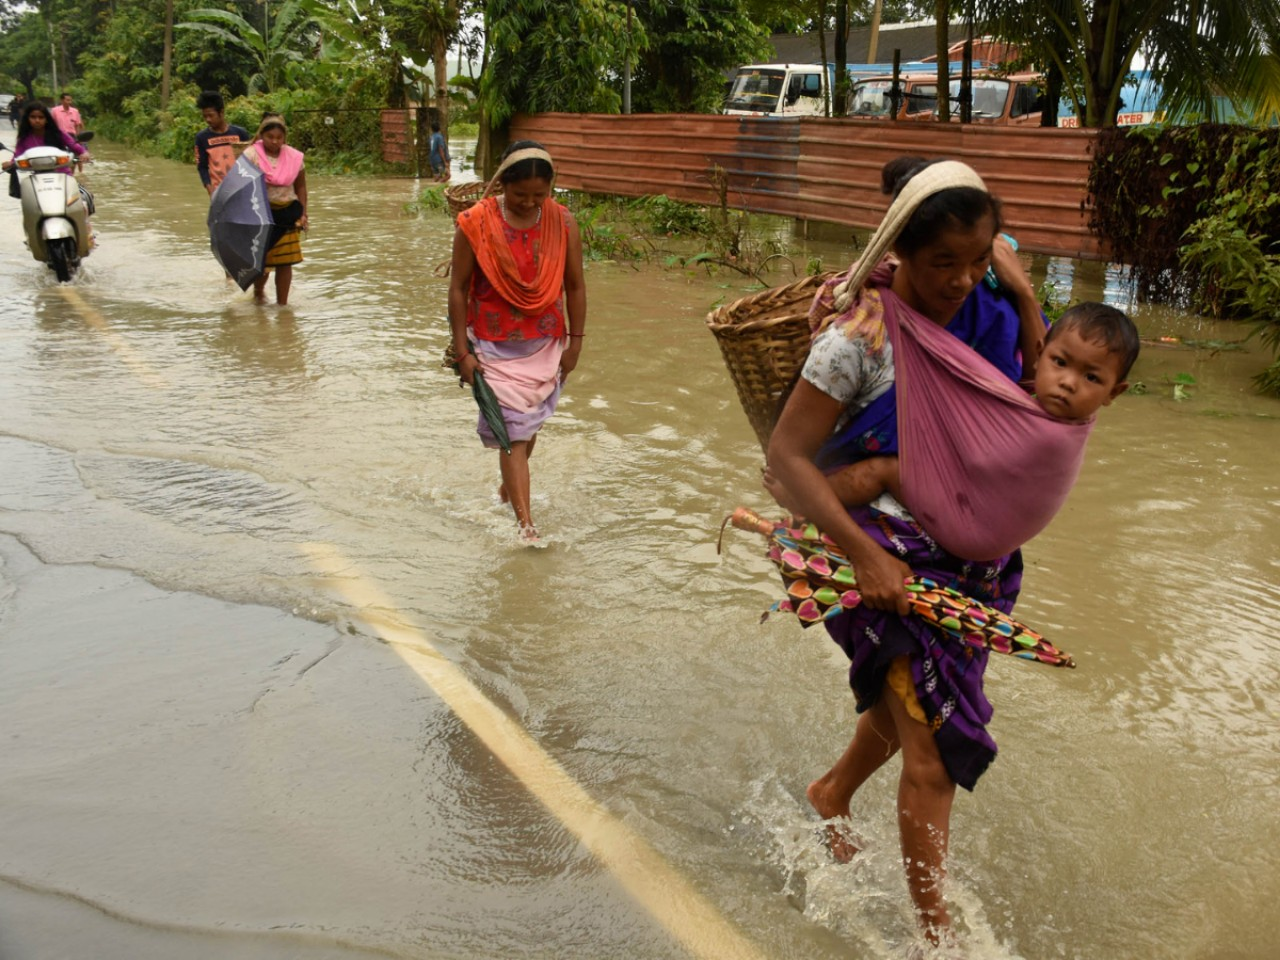 North-east India struggles with massive floods